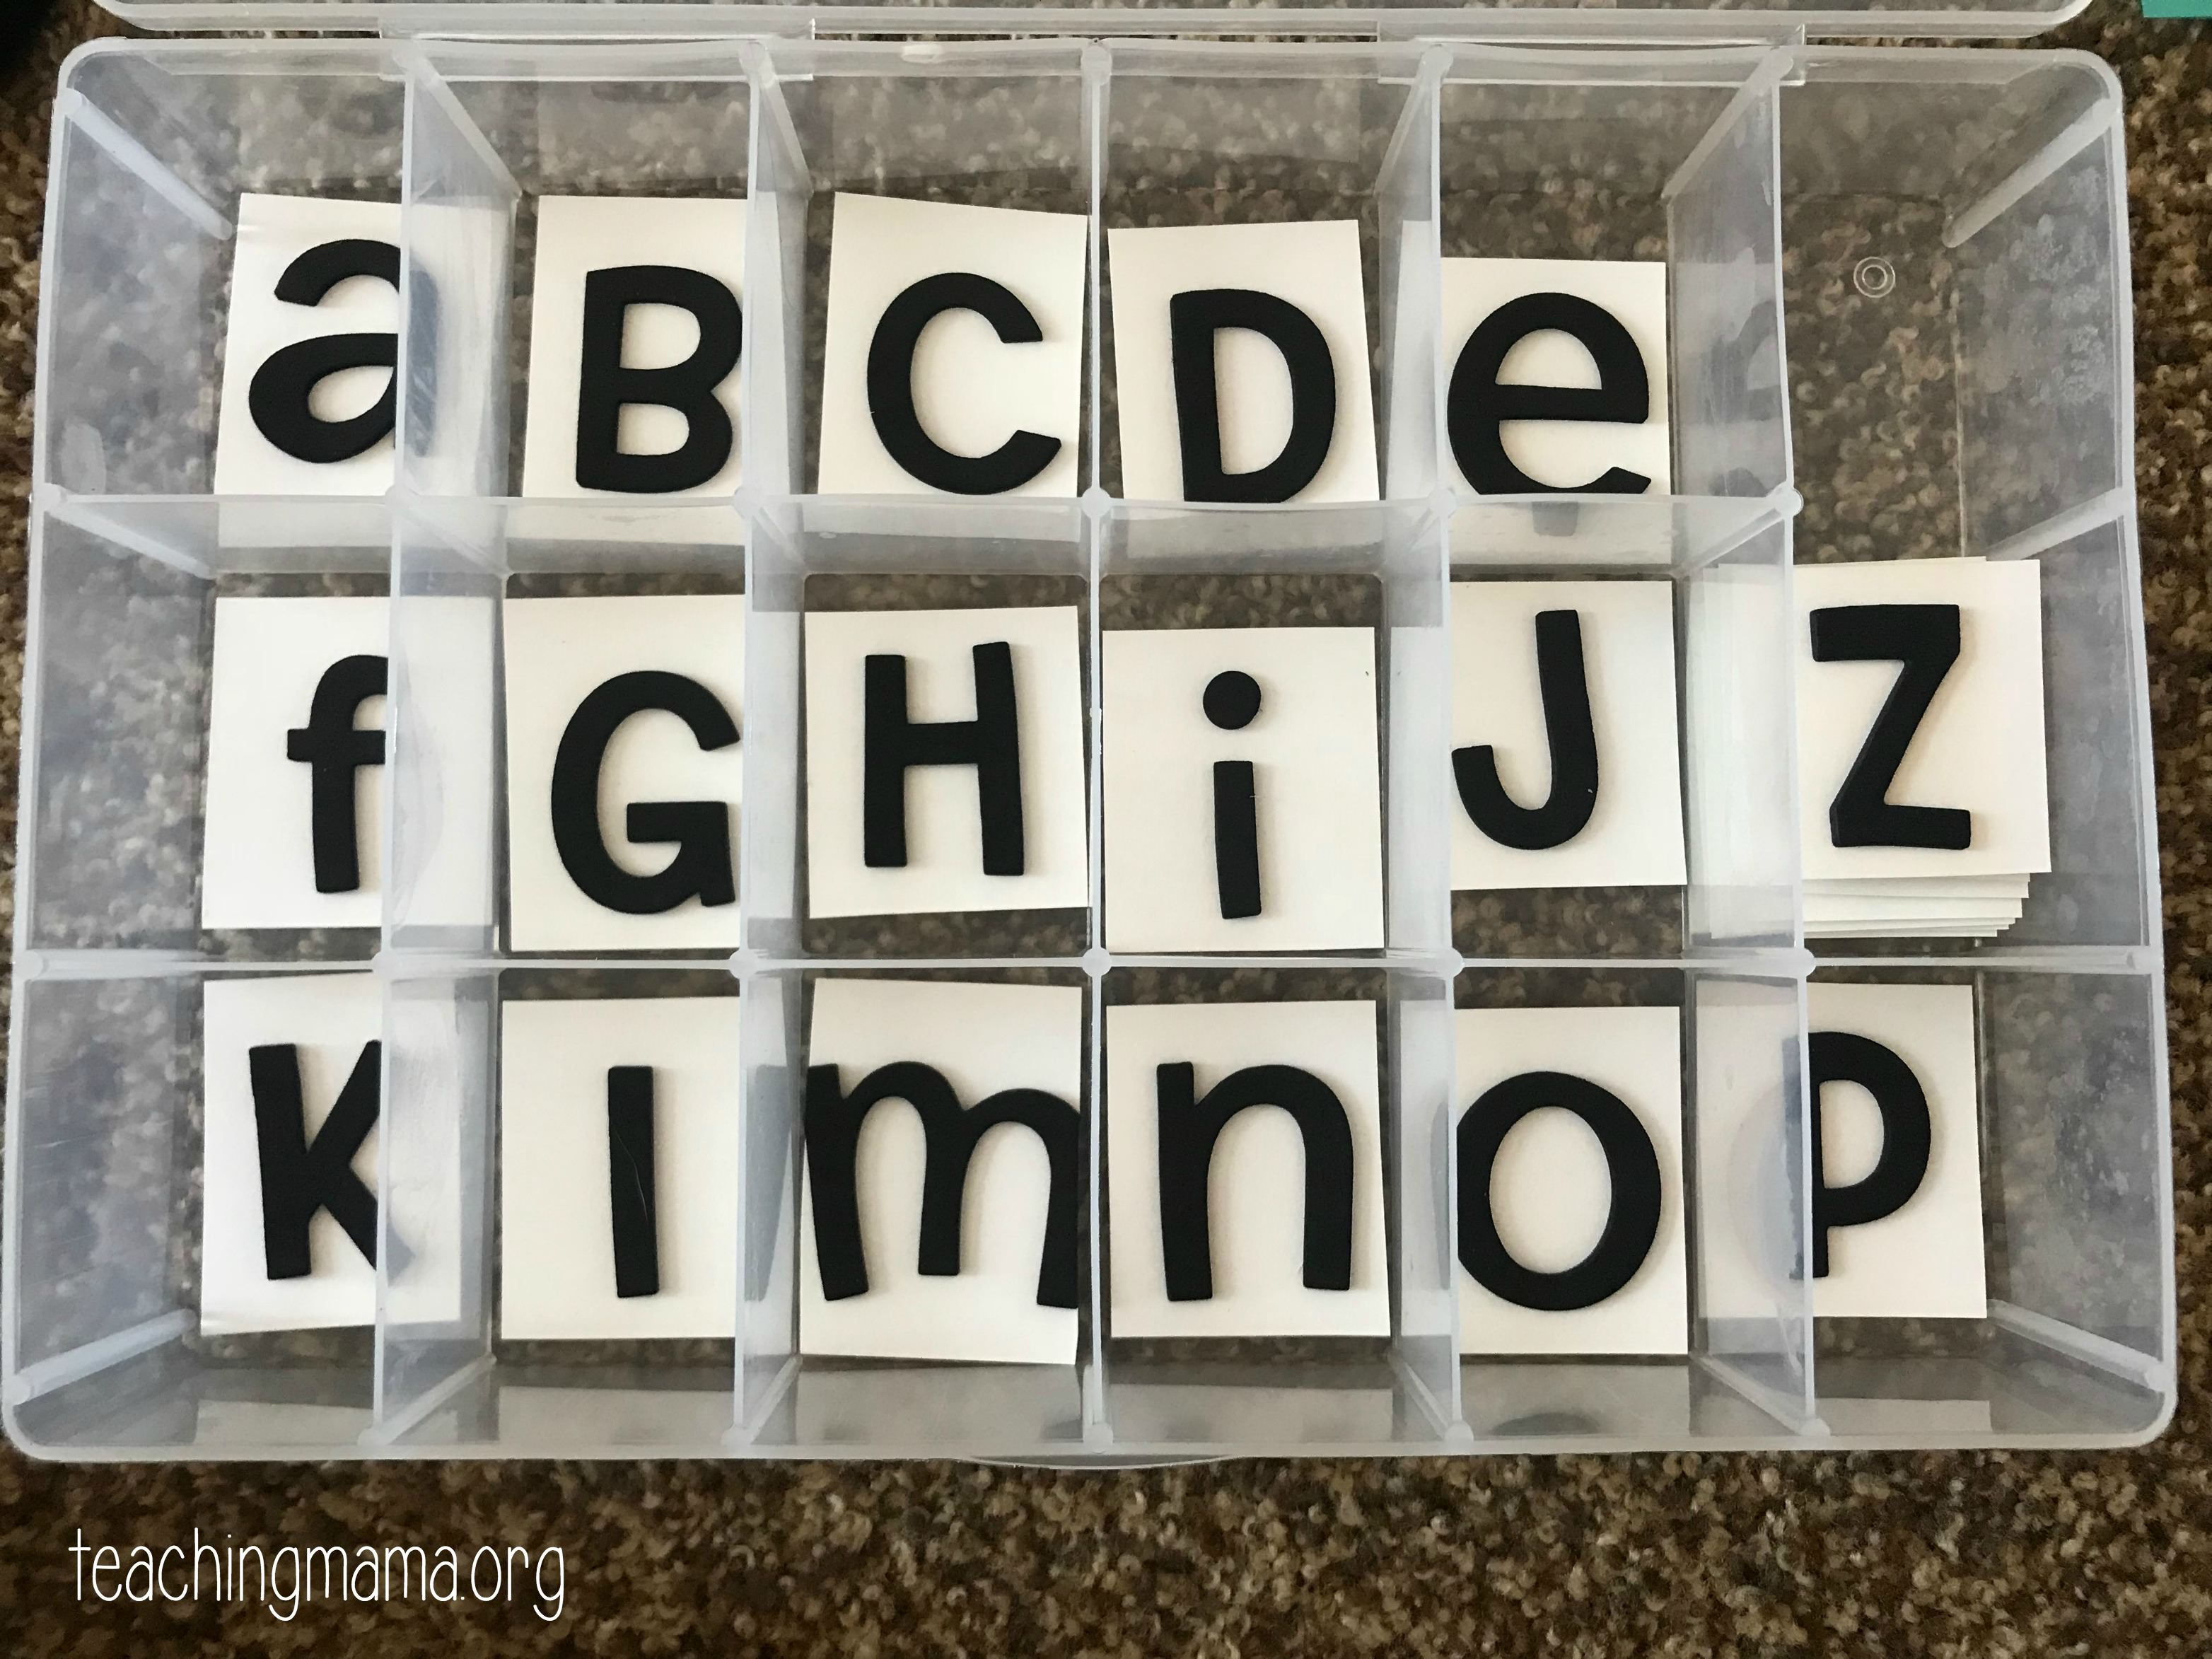 Alphabet Sound Box A Fun Way To Learn Letter Sounds Teaching Mama